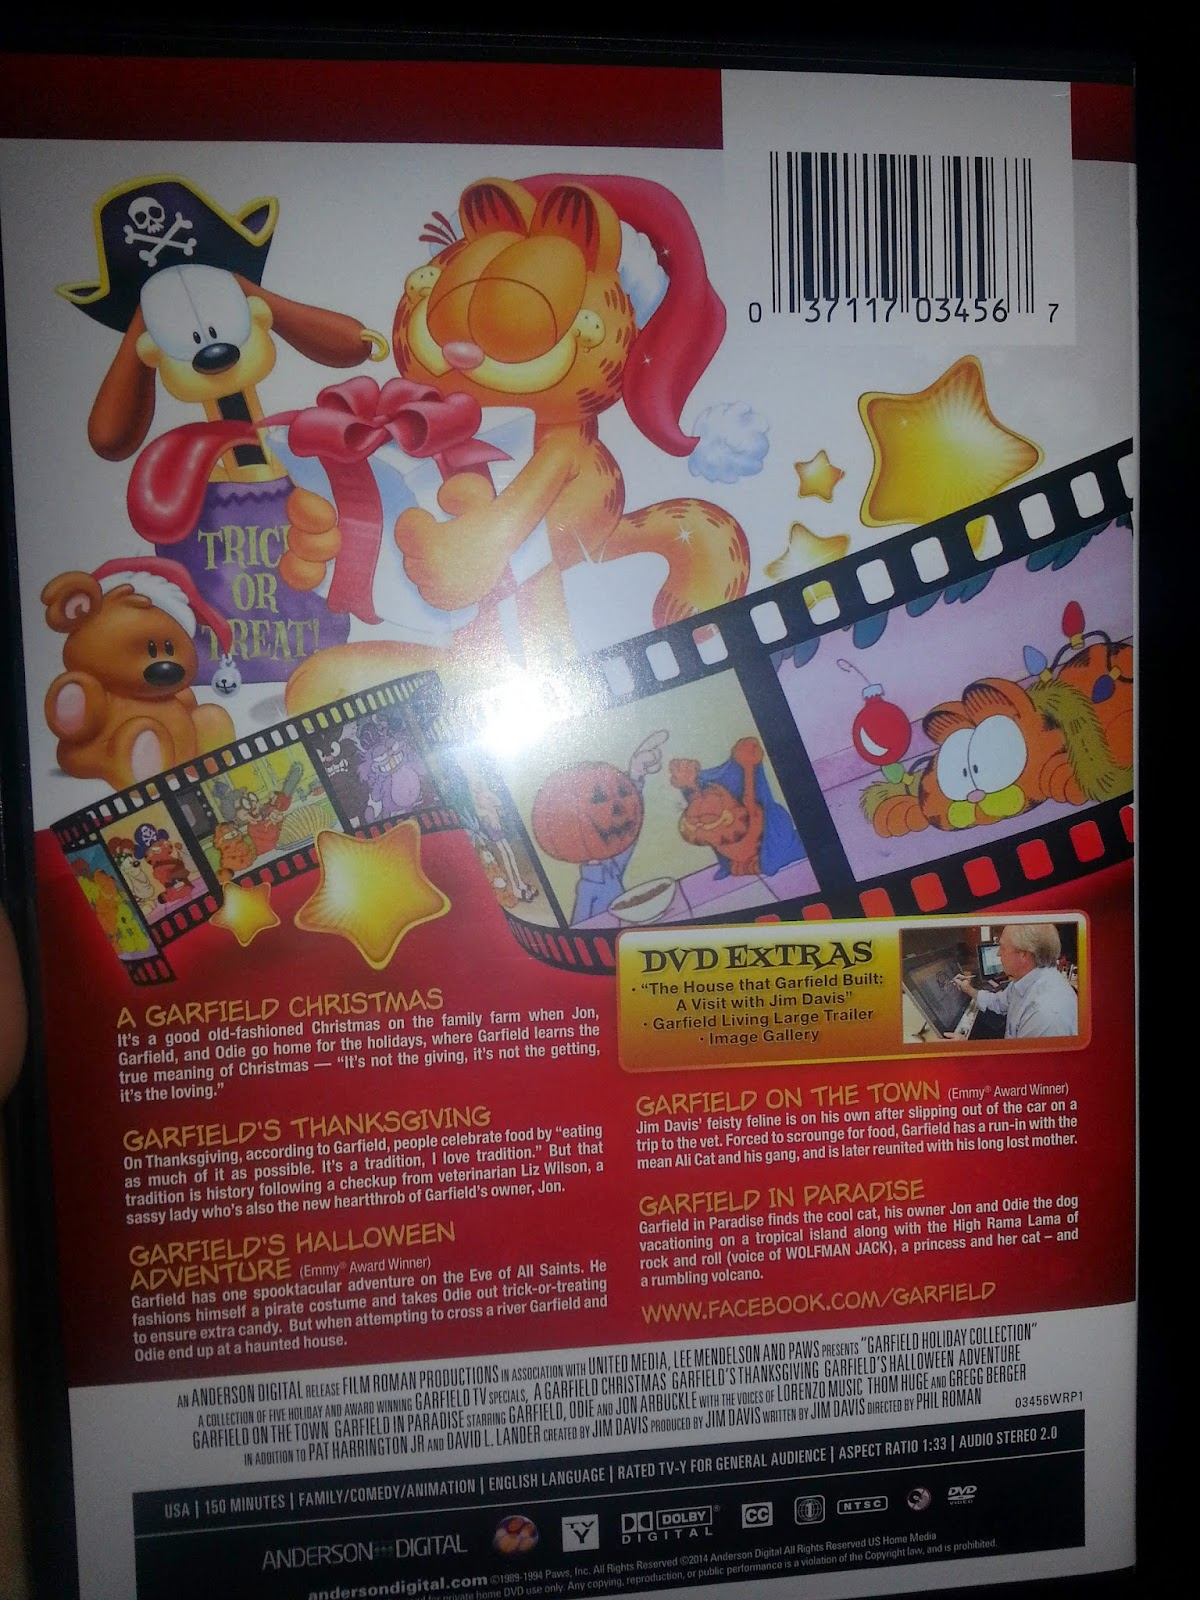 i remember loving garfield as a child me and my sister would watch it on saturday morning